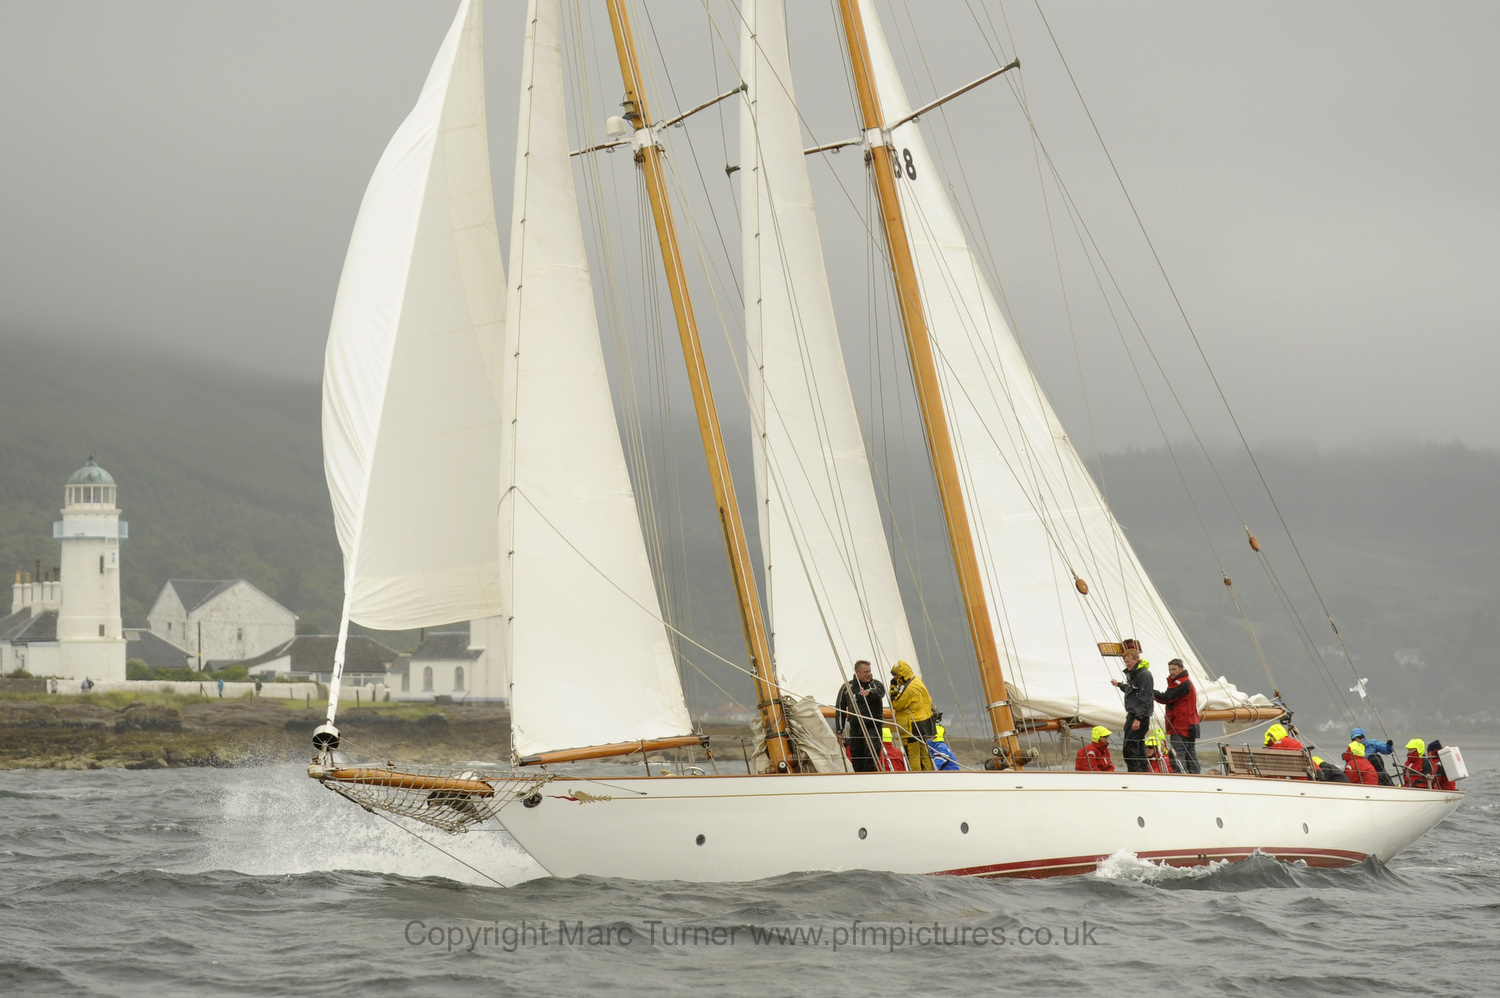 Sailing yacht Astor on the Clyde Day 2